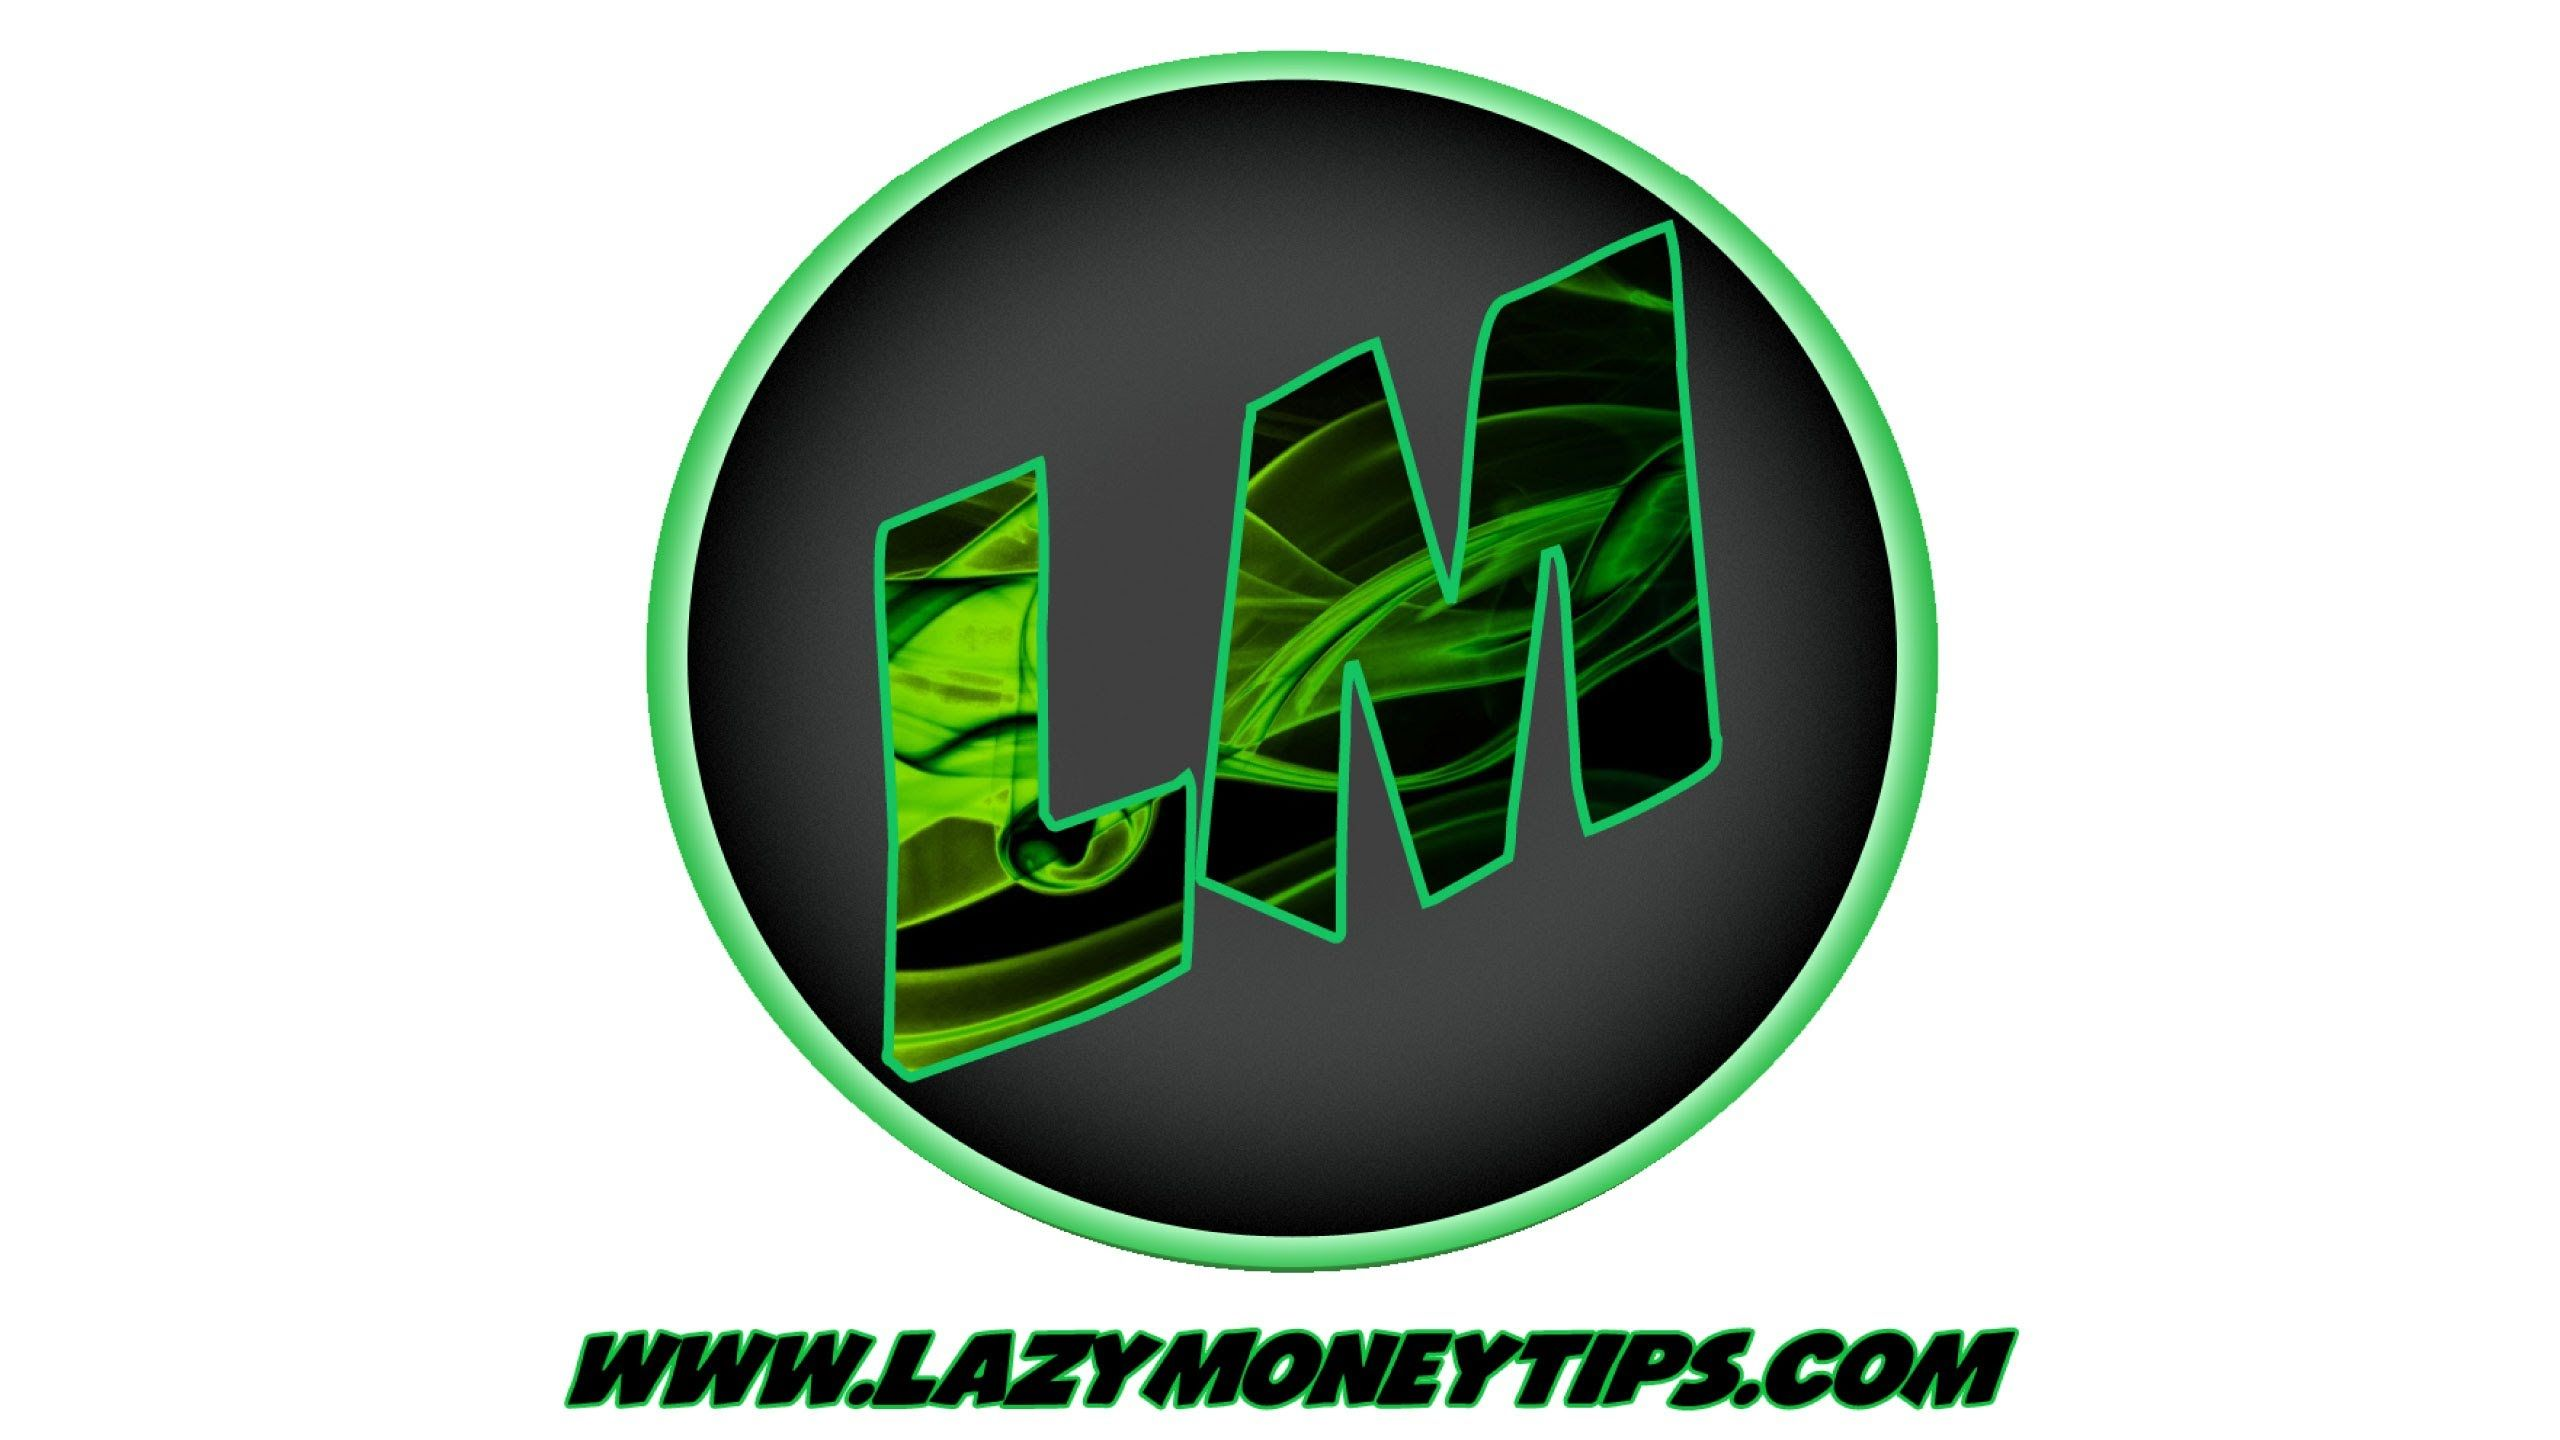 12 Ways 2 Profit - 12 Ways 2 Profit Review Why pay hundreds for what you can get for FREEEEEE!!  Hey!! My name is John Reyes. I want nothing, but success for anyone who decides to go forward with Online Profit For Dummies!  Please Watch the video and let me know if you have anymore questions.  Ways To Make Money Fast - OPFD Is The BEST Way To Make Money Quick  http://youtu.be/uFbkU1Y5Duo  Thank you, John R  Related Terms: 12 Ways 2 Profit Review,12 Ways 2 Profit http://youtu.be/q-z5arlBwIg